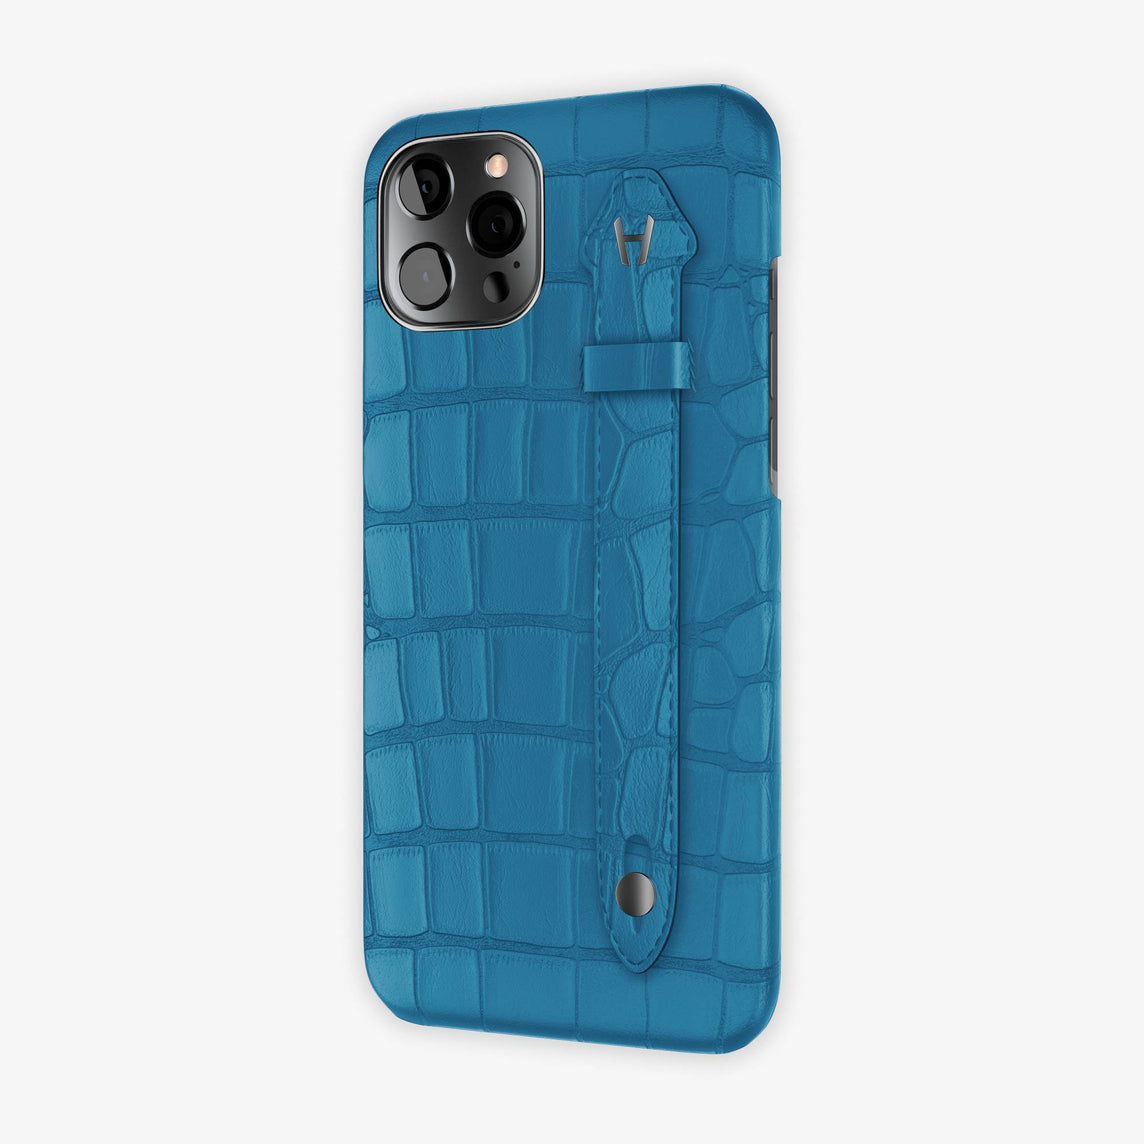 Alligator Side Finger Case iPhone 12 Pro Max | Blue Lagoon/Blue Lagoon - Black